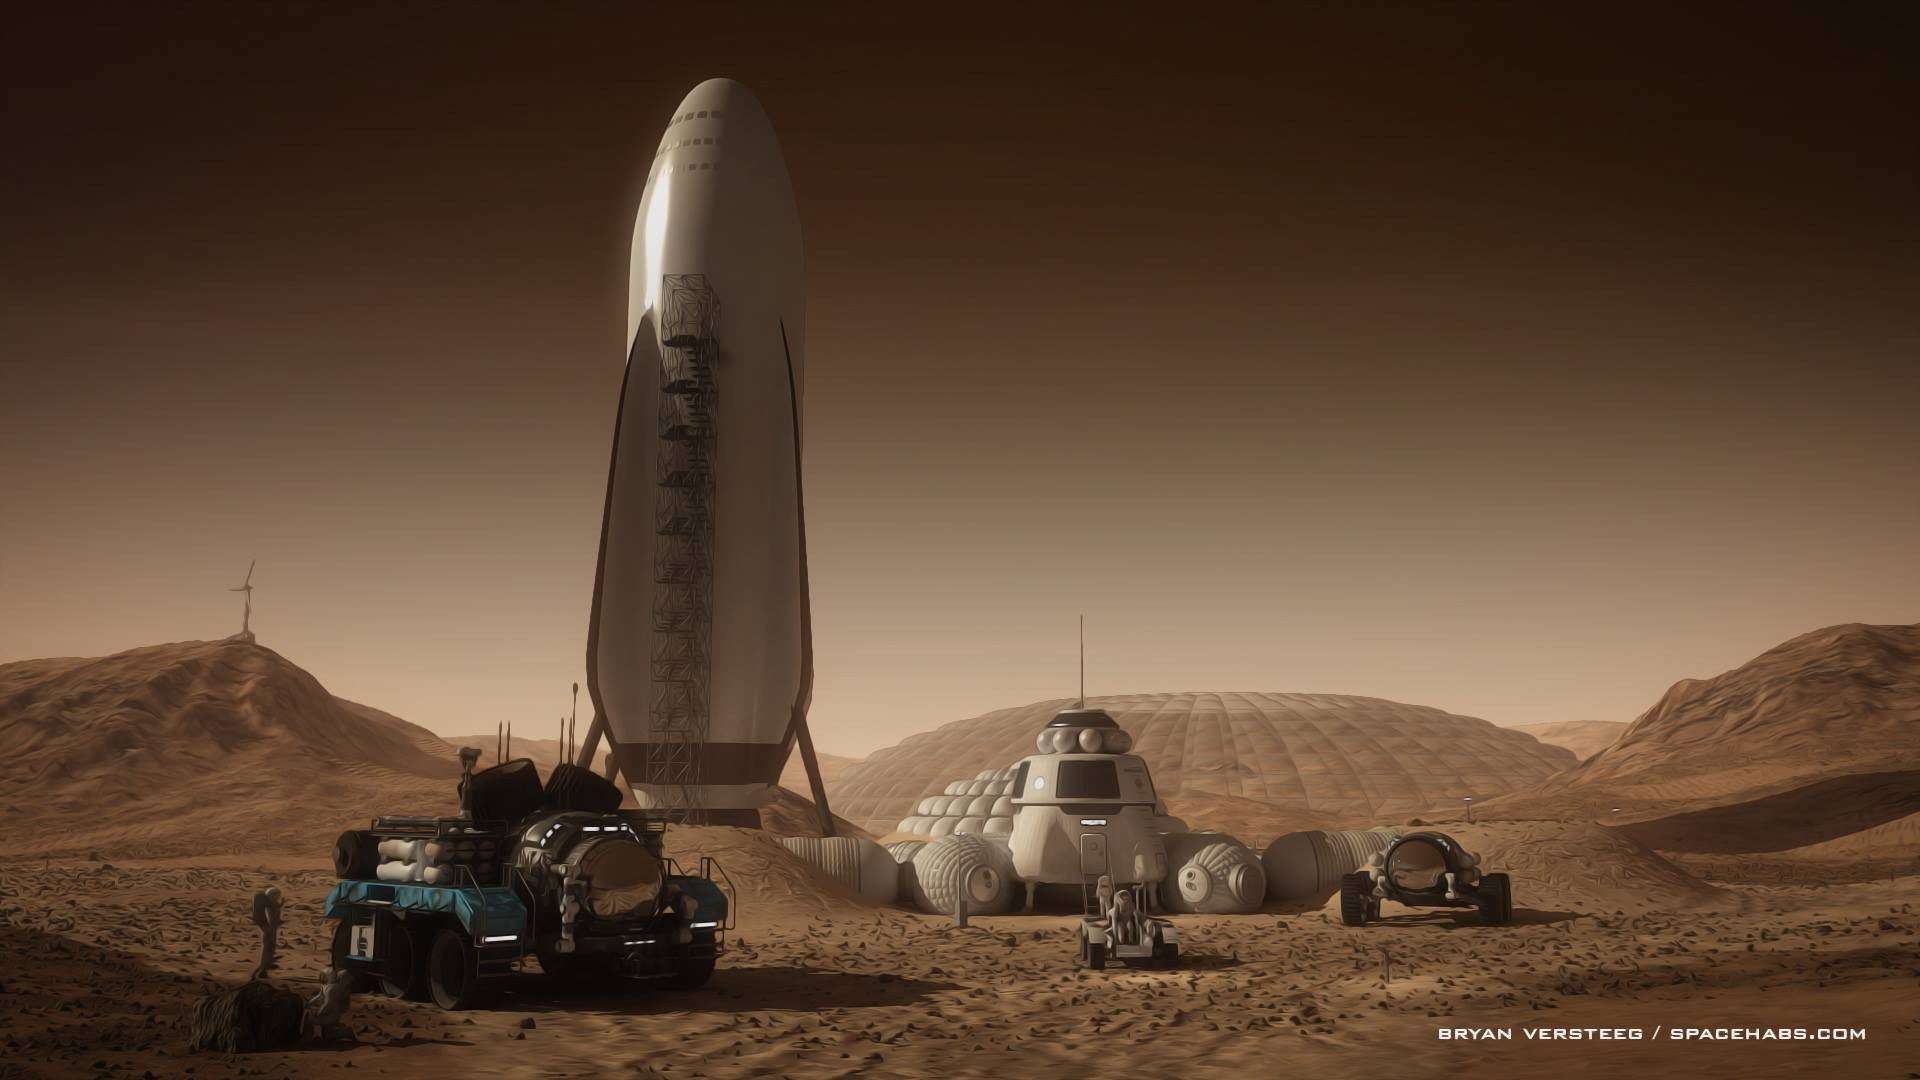 SpaceX+spaceship+at+Mars+base+by+Bryan+Versteeg.jpg